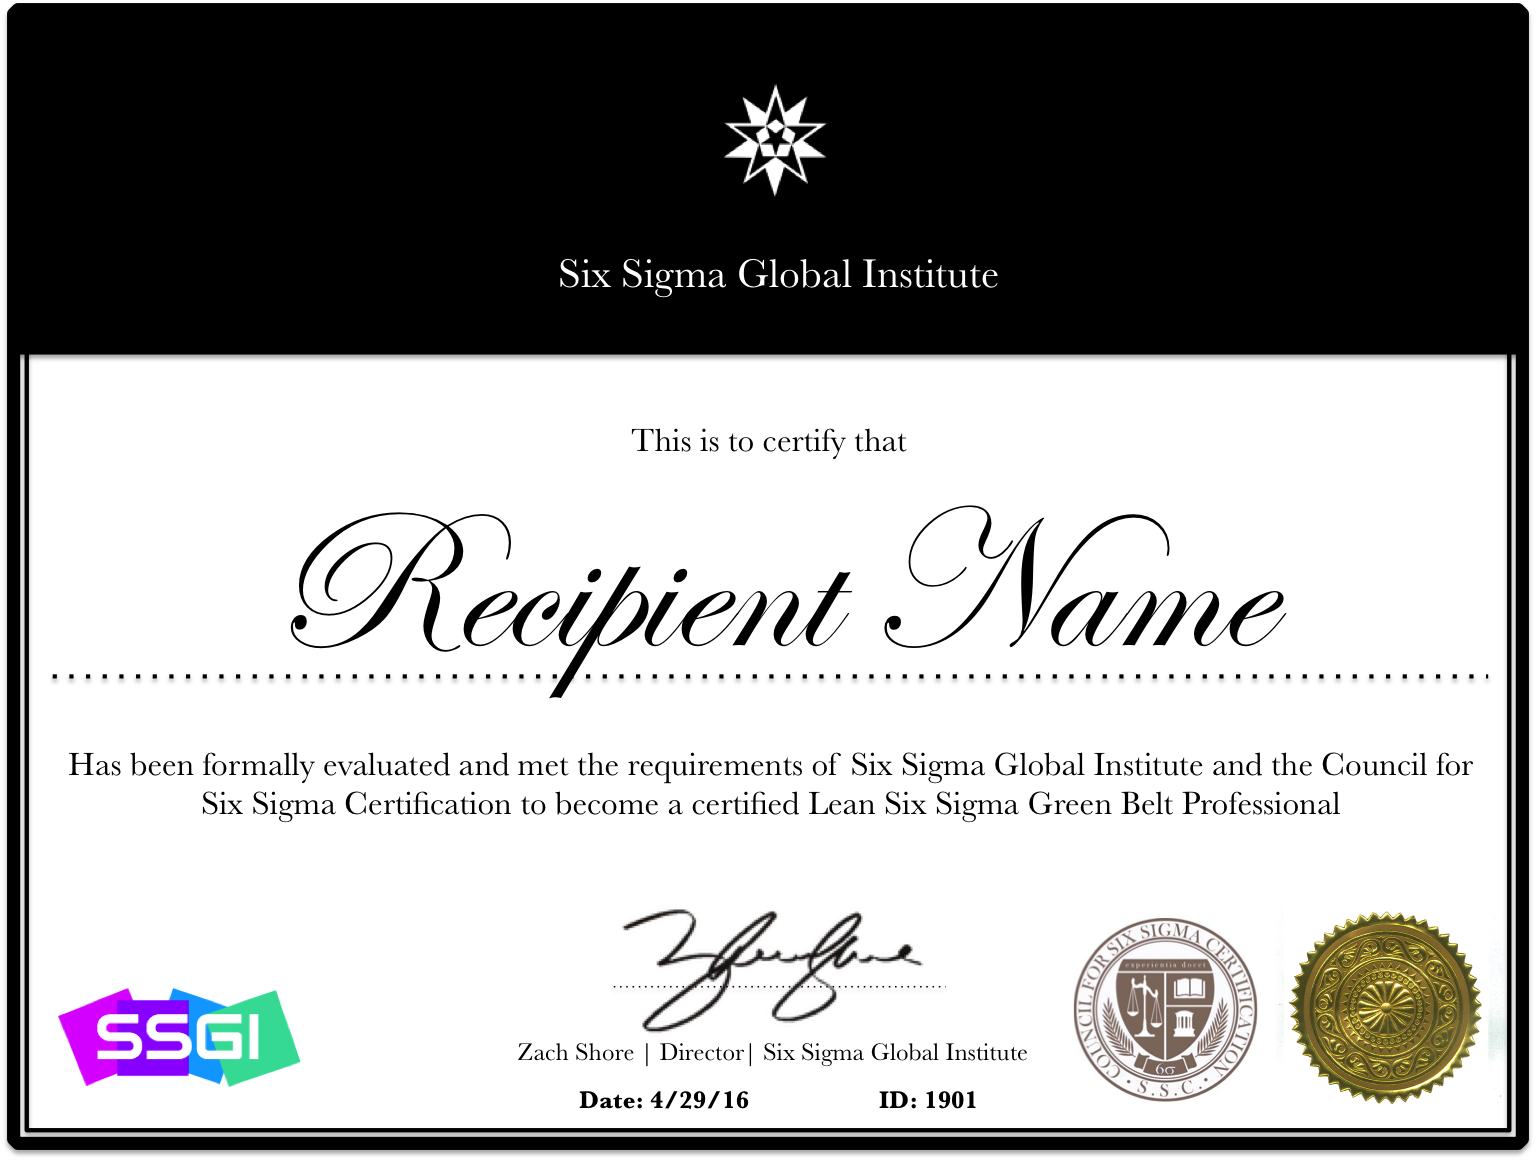 Six sigma global institute certification want to get around to lean six sigma green belt certification and online training offered by six sigma global institute is fully accredited and industry recognized 1betcityfo Choice Image